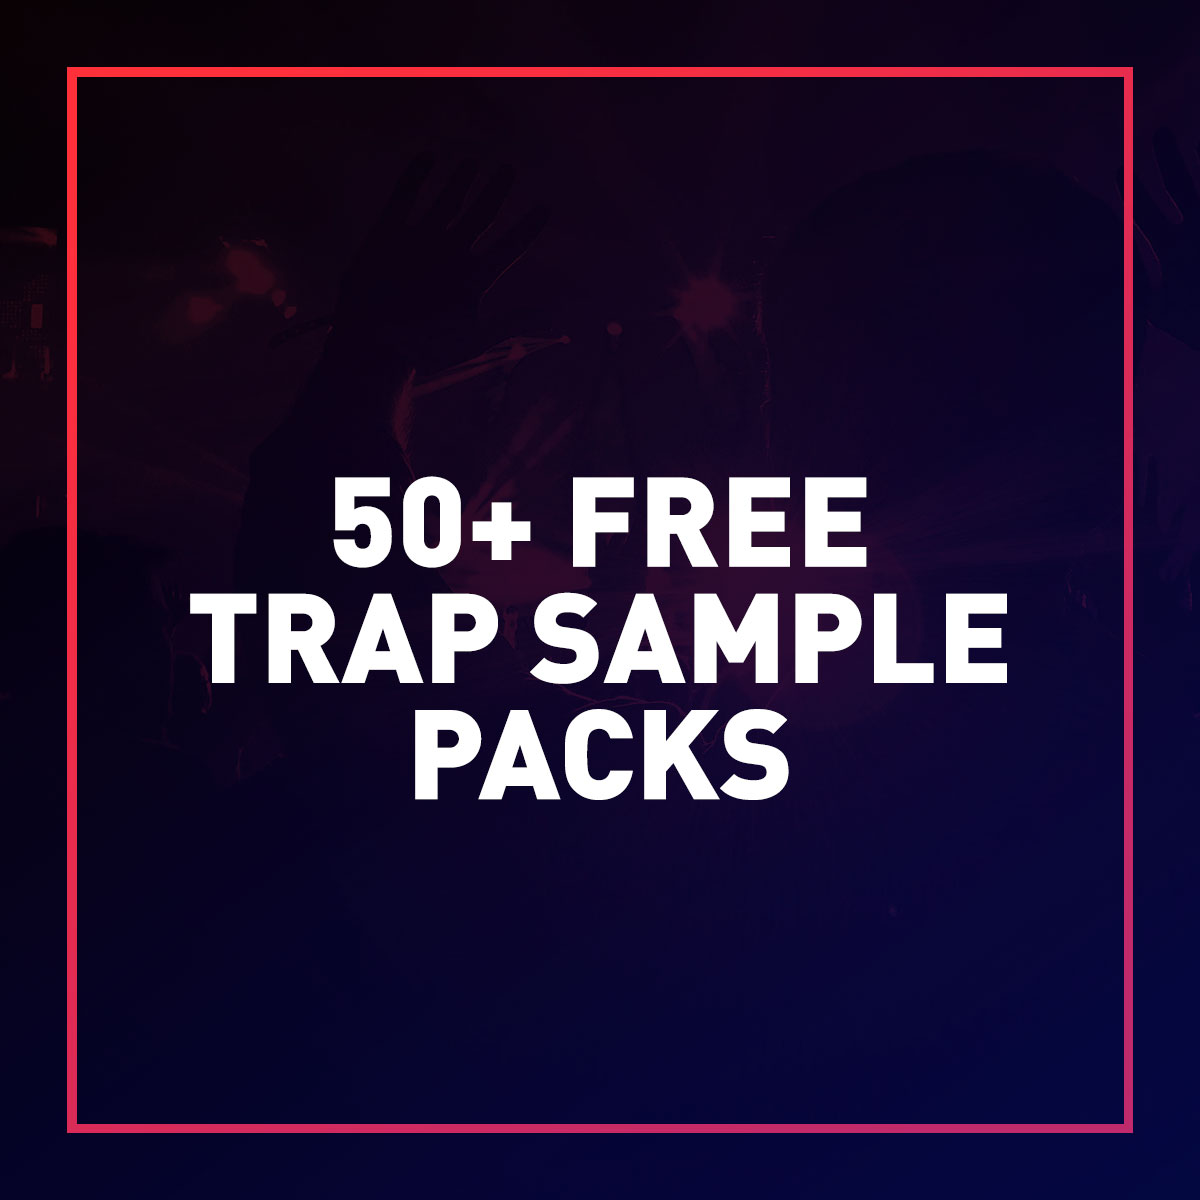 50+ Free Trap Sample Packs for 2020